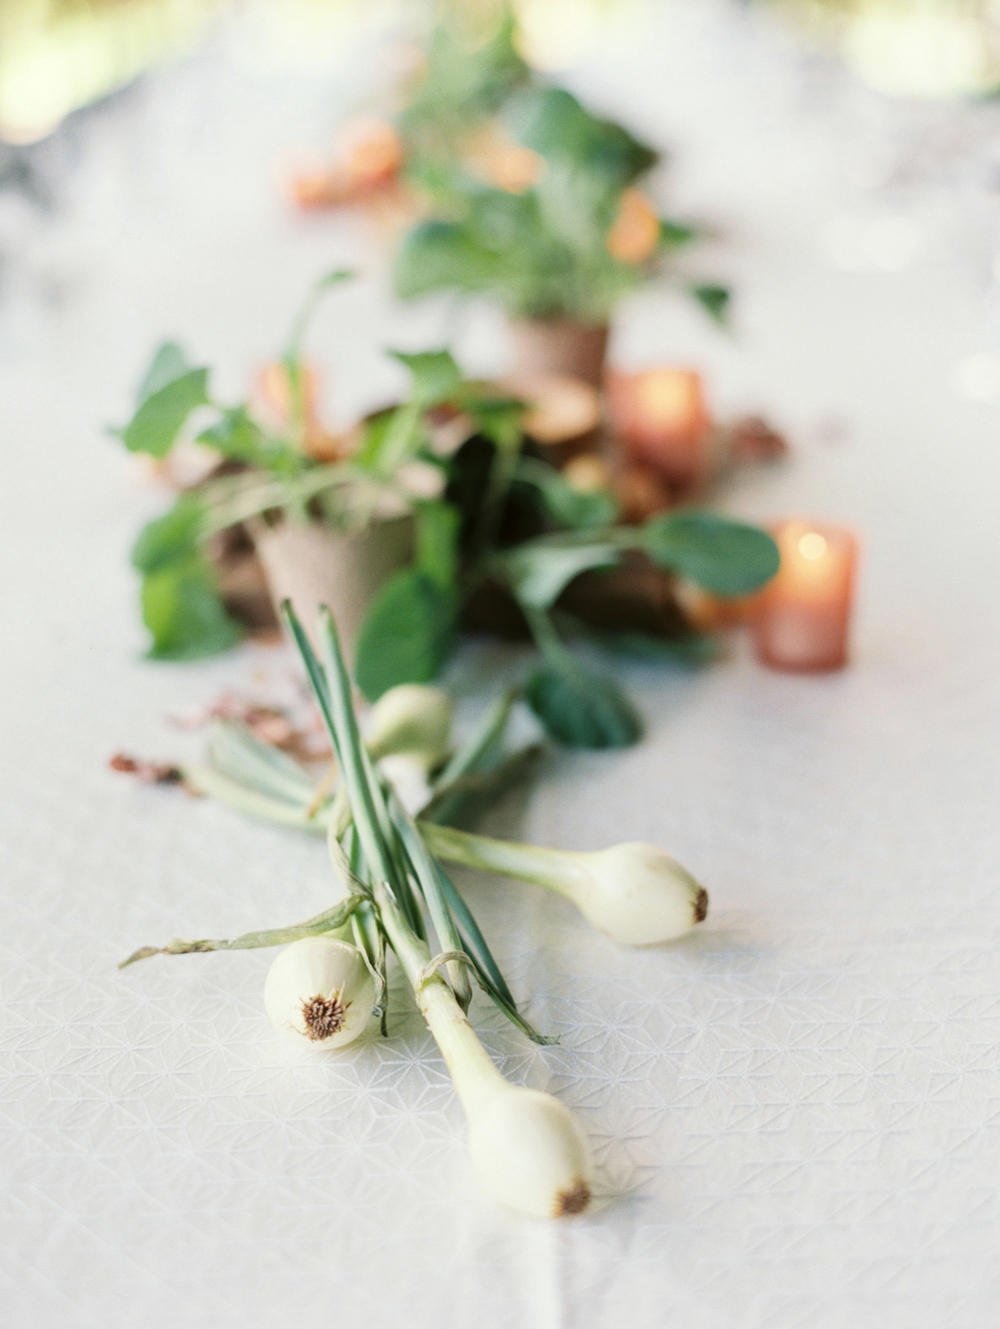 I just loved the spring onions that stretched along the center of the table and created a linear contrast against the soft, patterned white linen.  Centerpiece styling by Marianne Caldwell of Riveroaks.  Photo by Holly Carlisle.